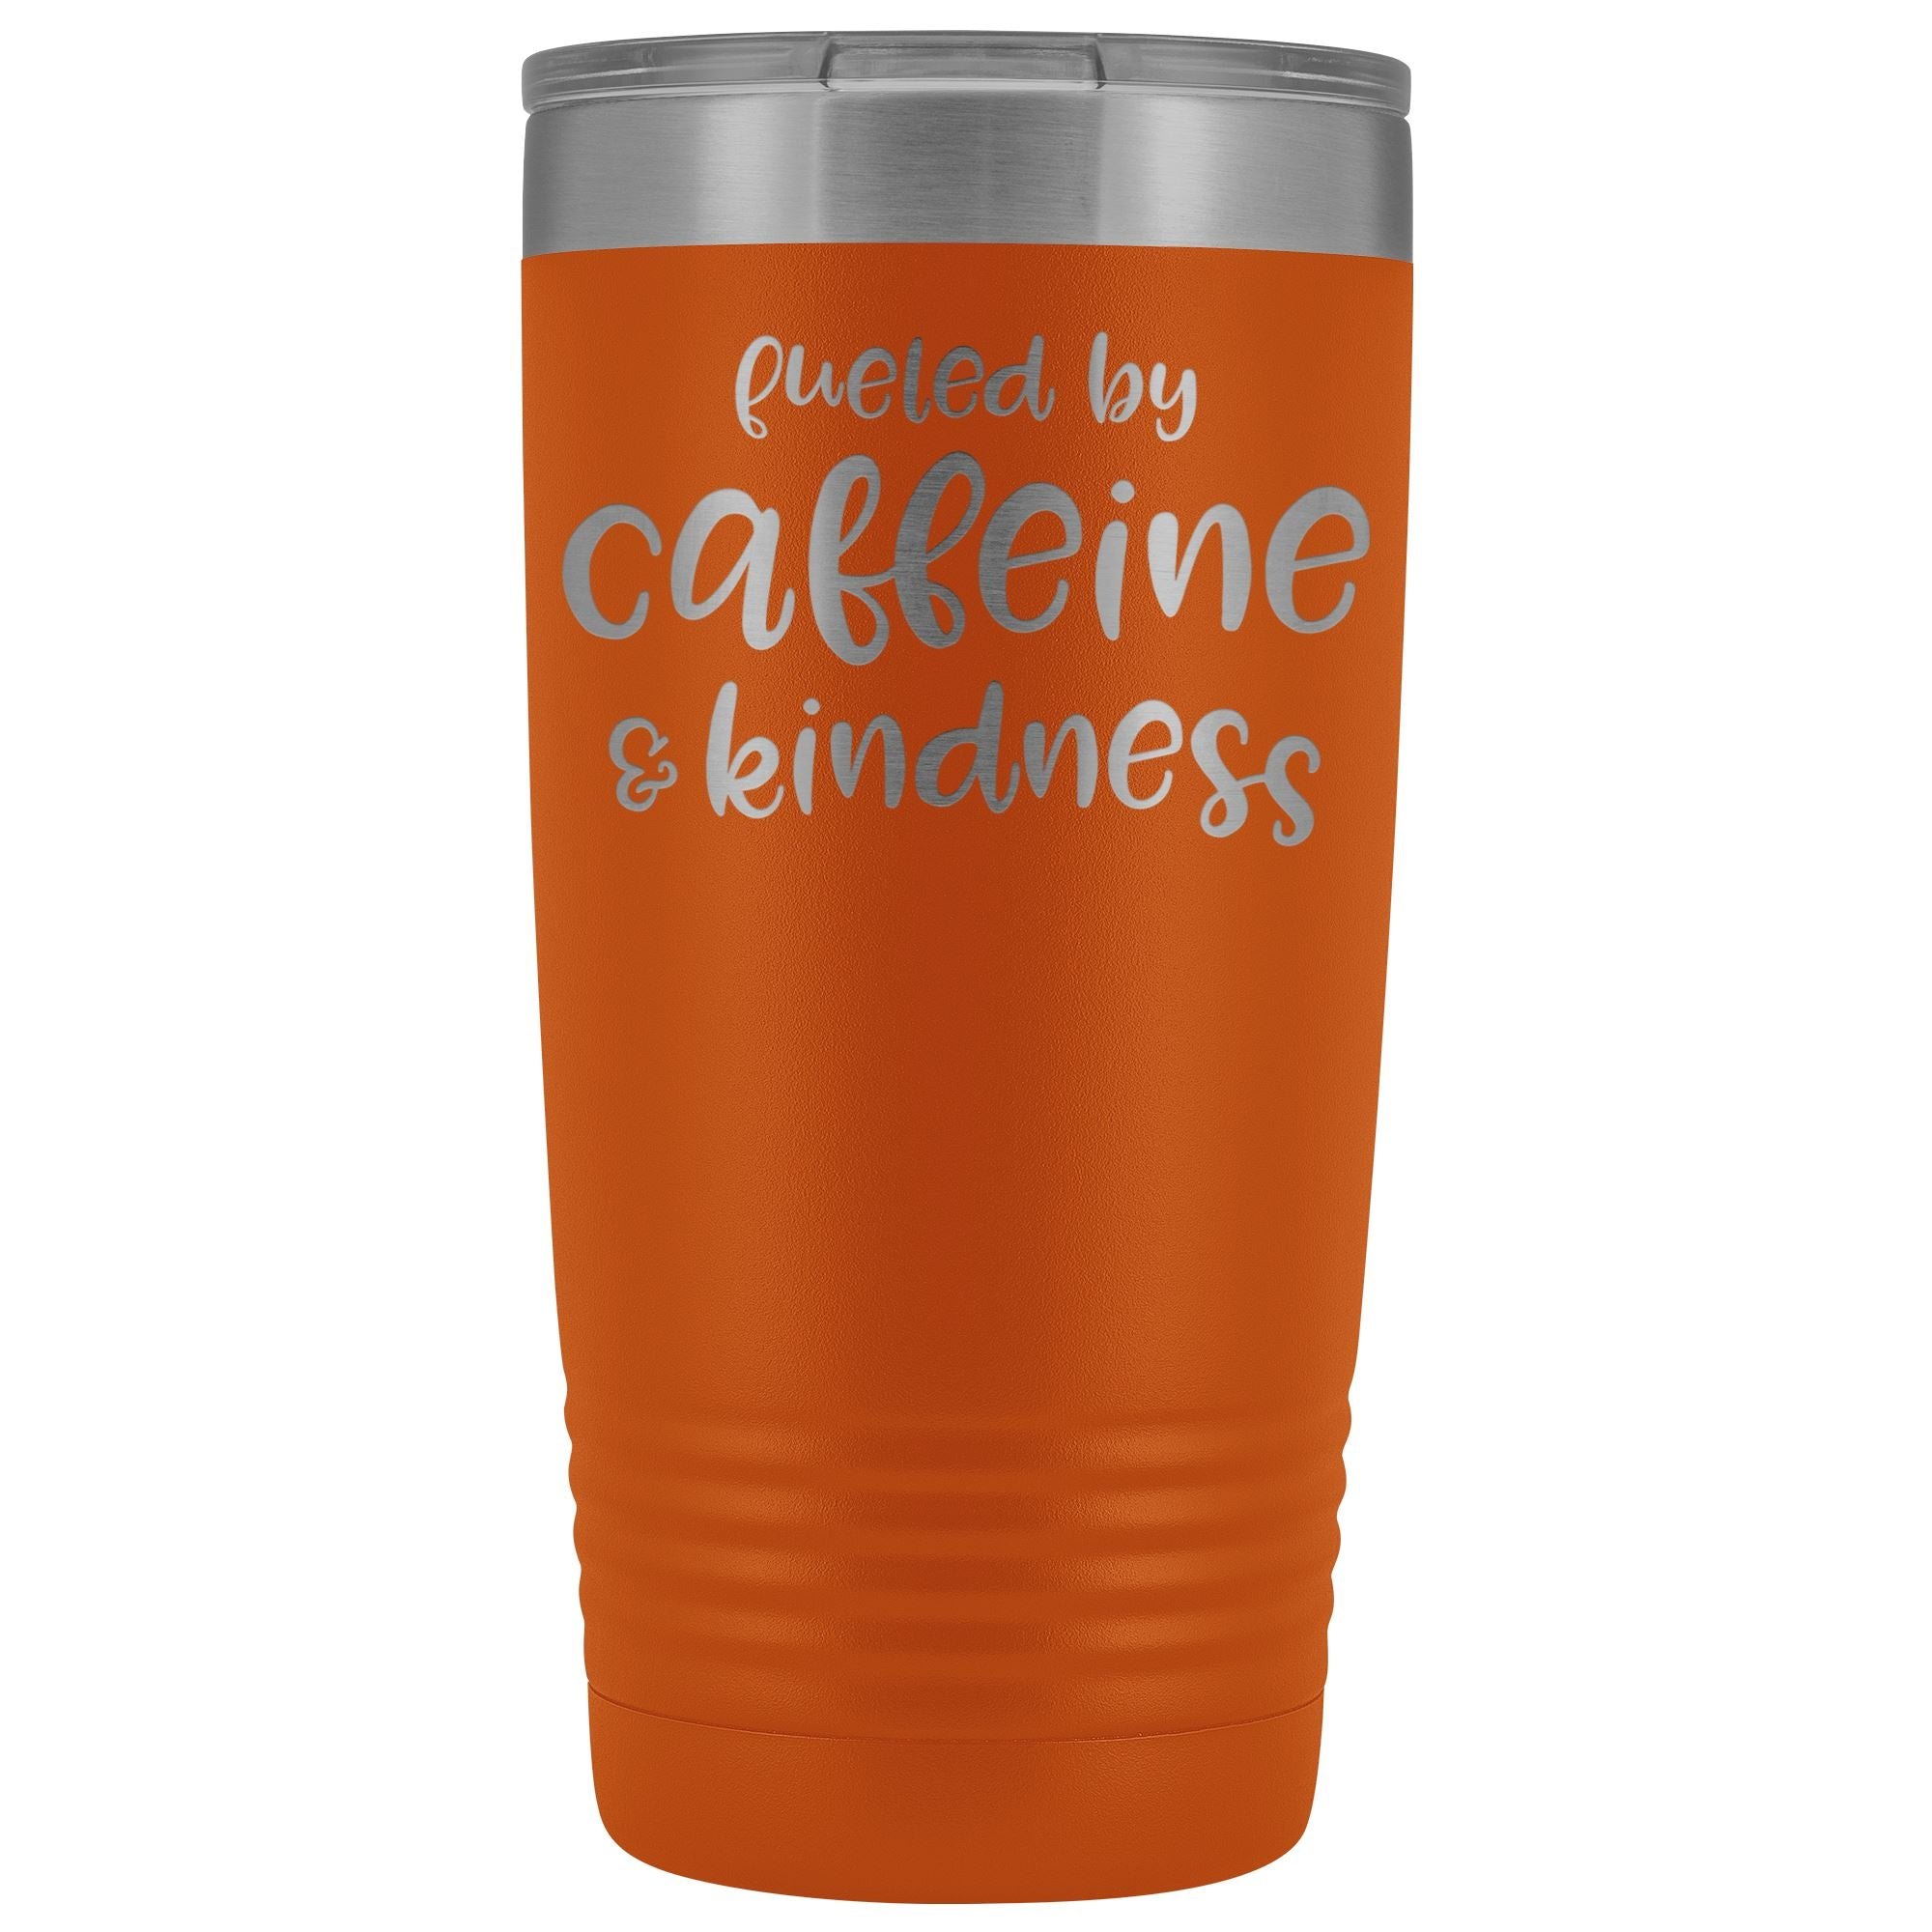 Fueled by Caffeine & Kindness, 20oz Insulated Coffee Tumbler, coffee mug, travel mug, coffee lover